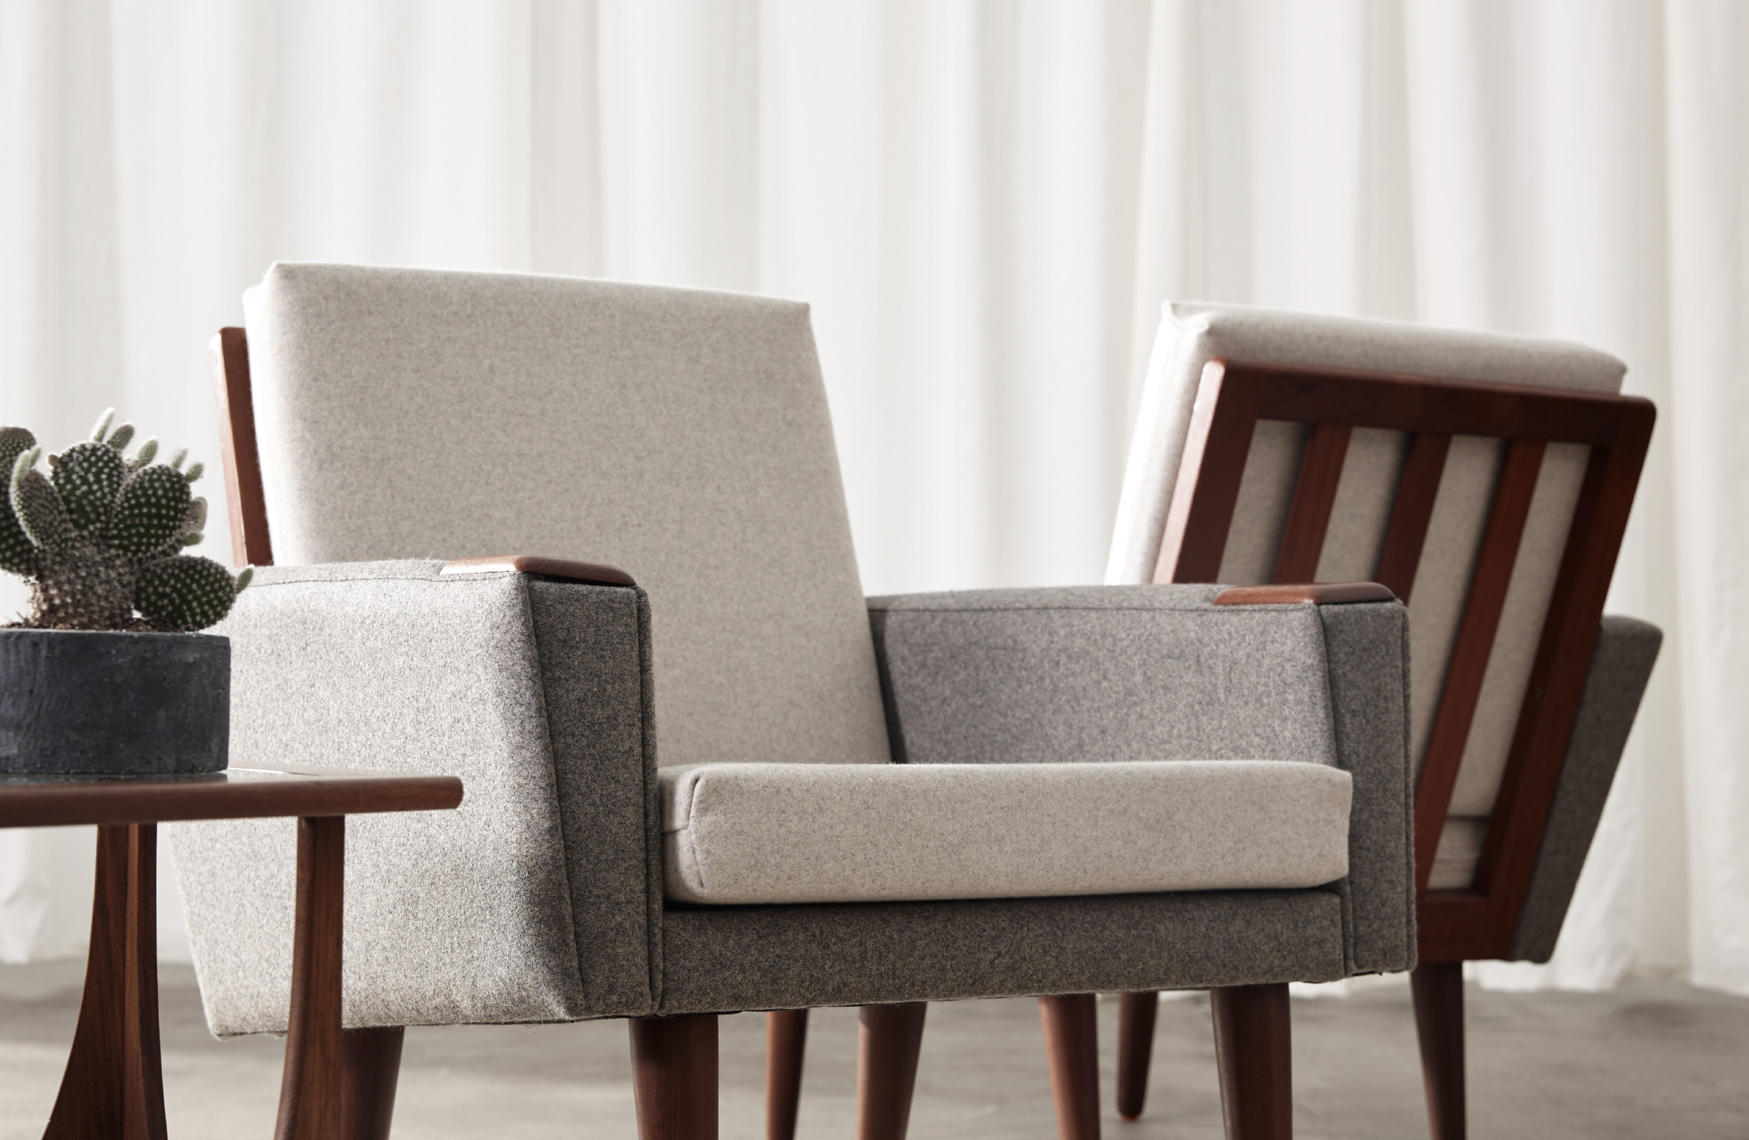 2 grey fabric armchairs with wooden legs